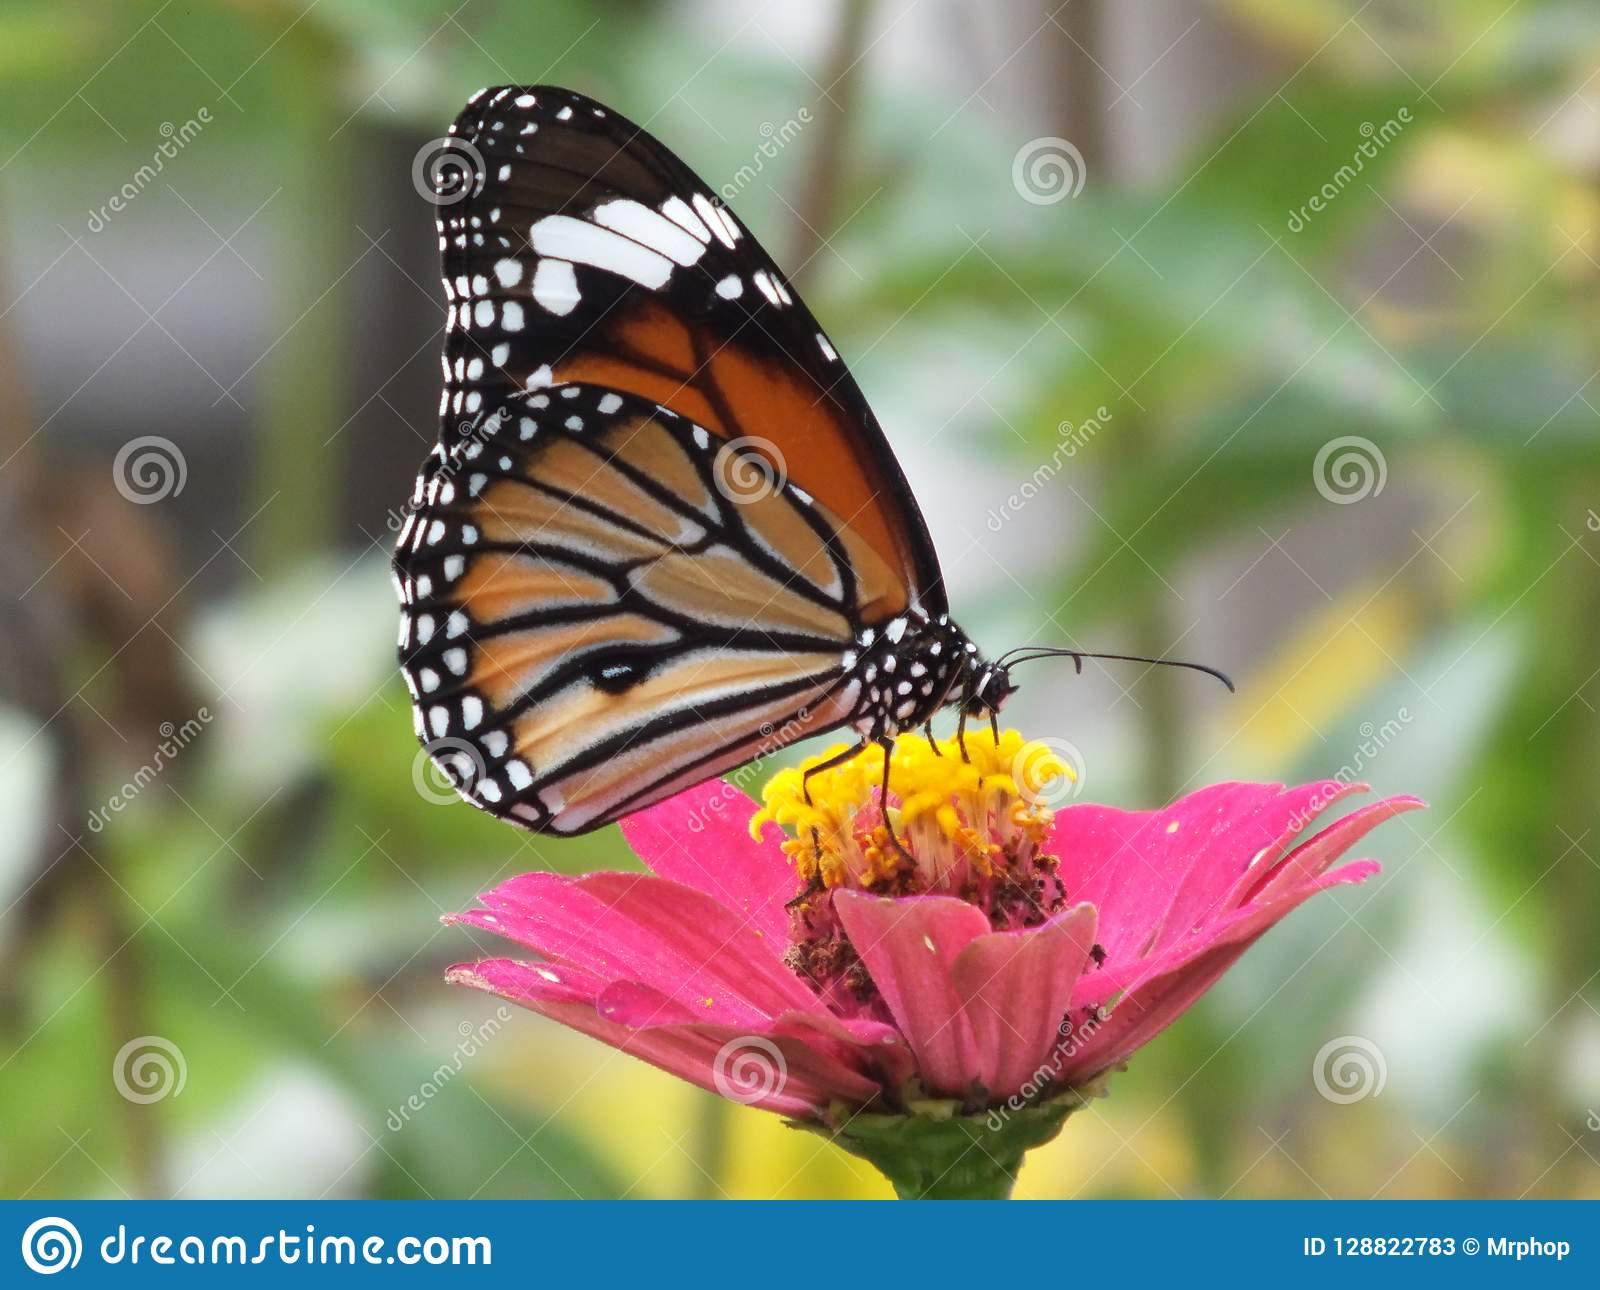 Monarch Beautiful Colorful Butterfly Backgrounds Stock Image